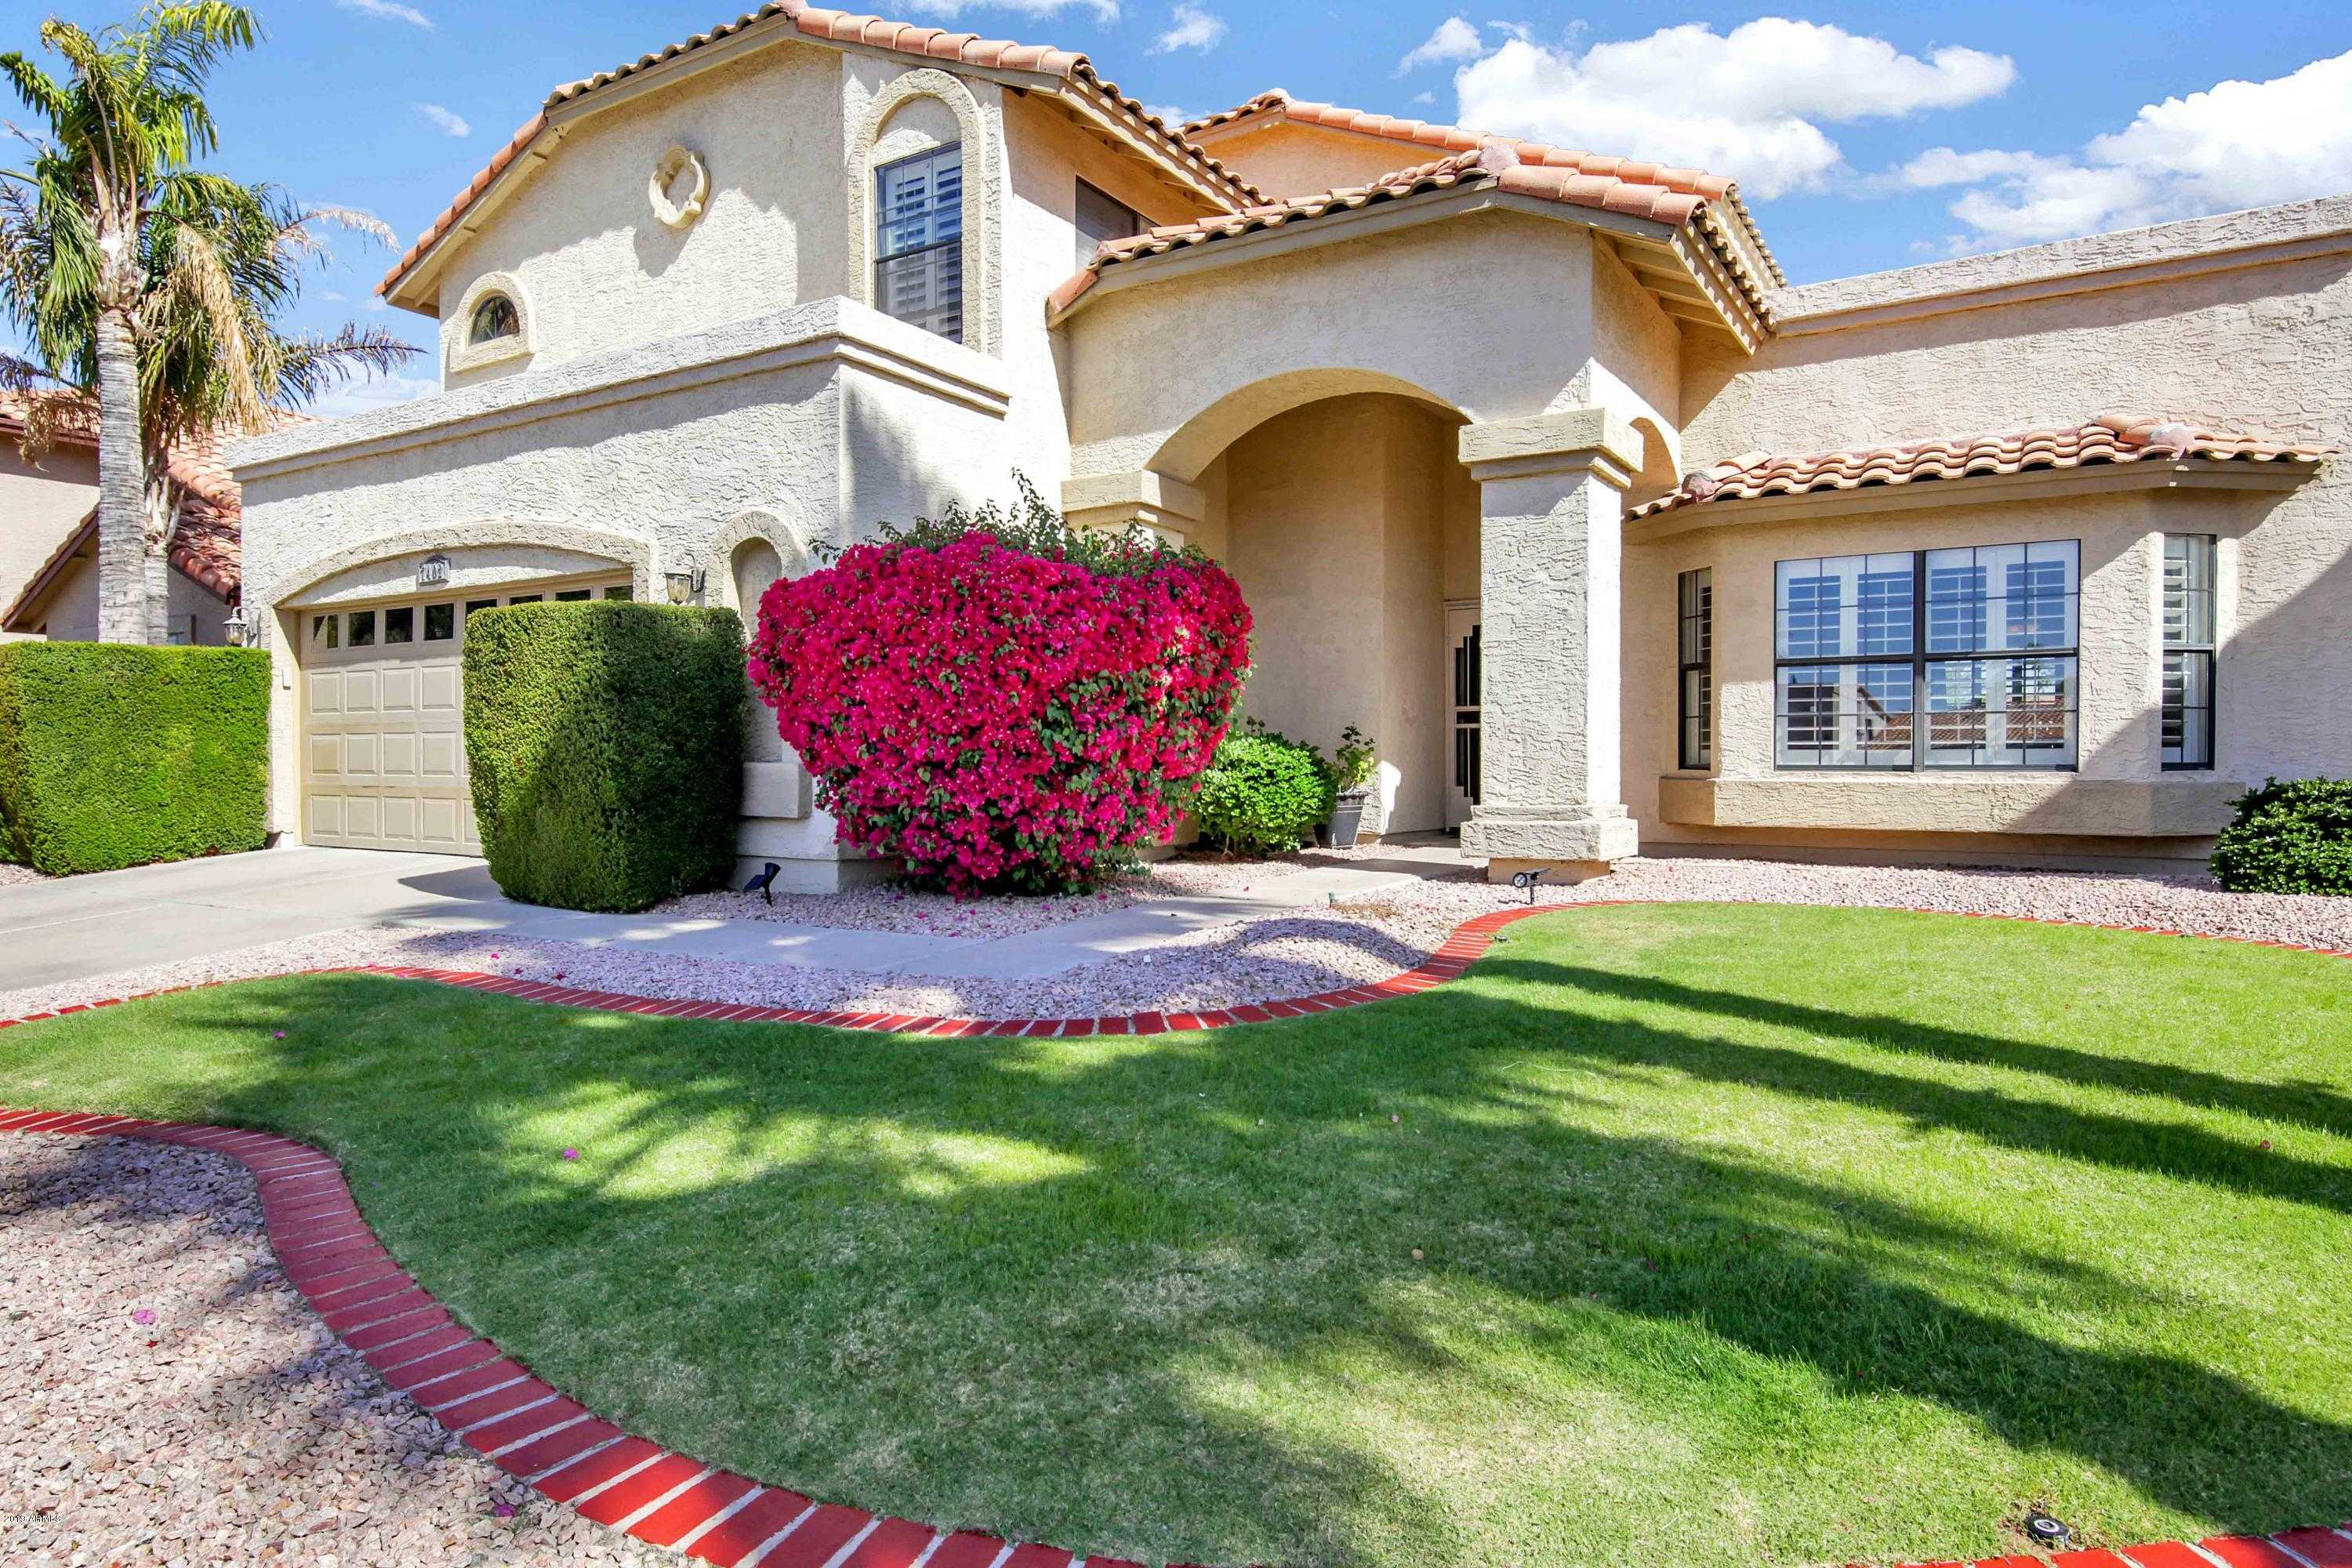 $349,999 - 4Br/3Ba - Home for Sale in Arrowhead By The Lakes Lot 1-203, Glendale